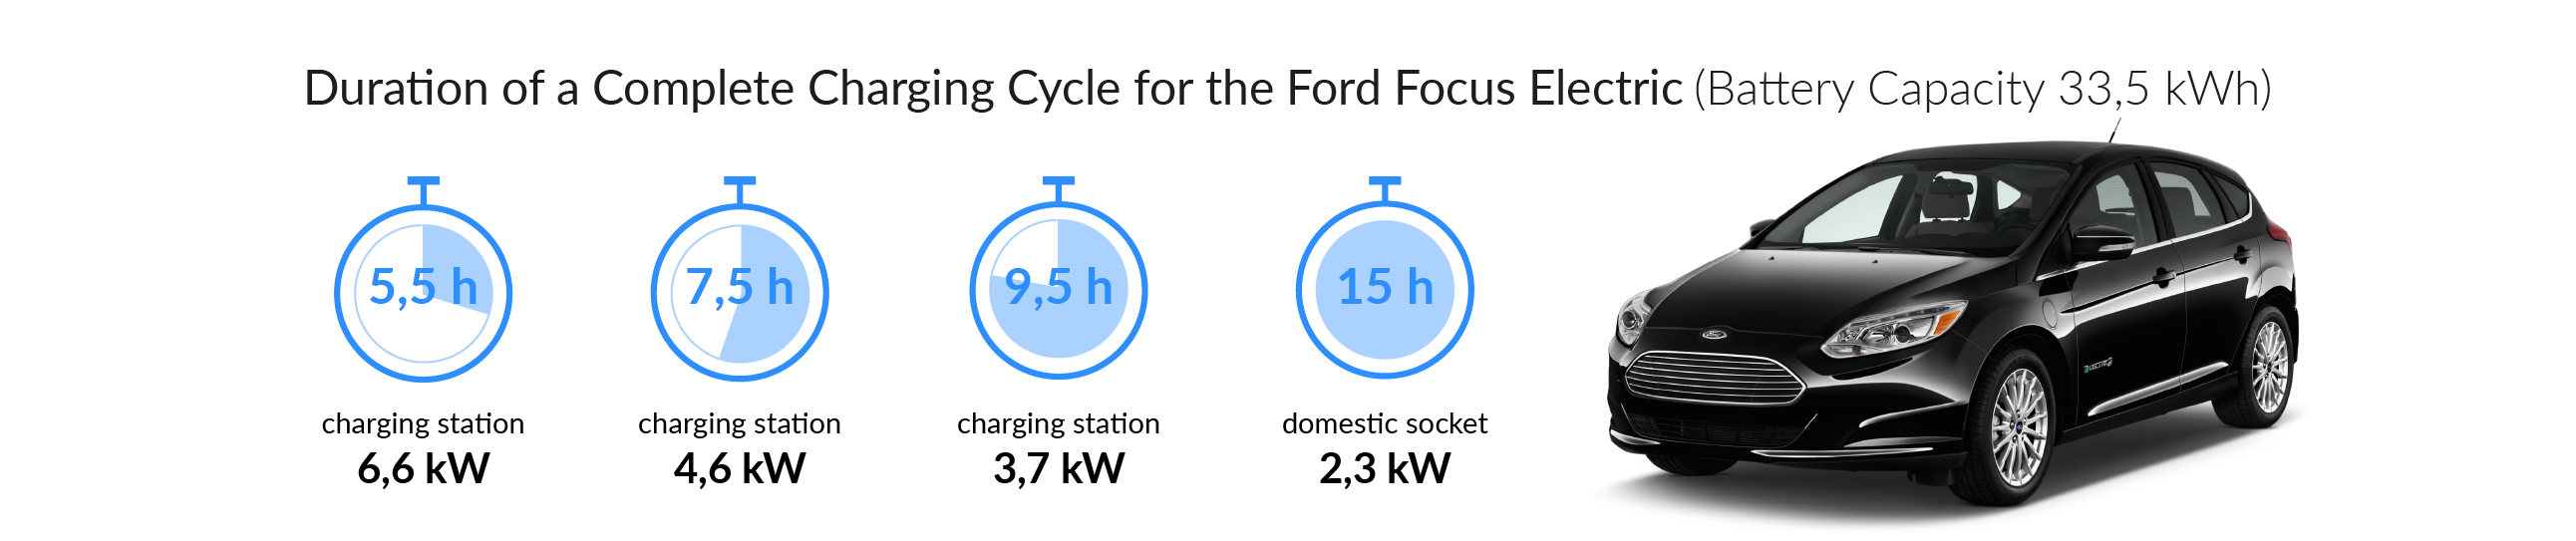 Charging time for your Ford Focus Electric